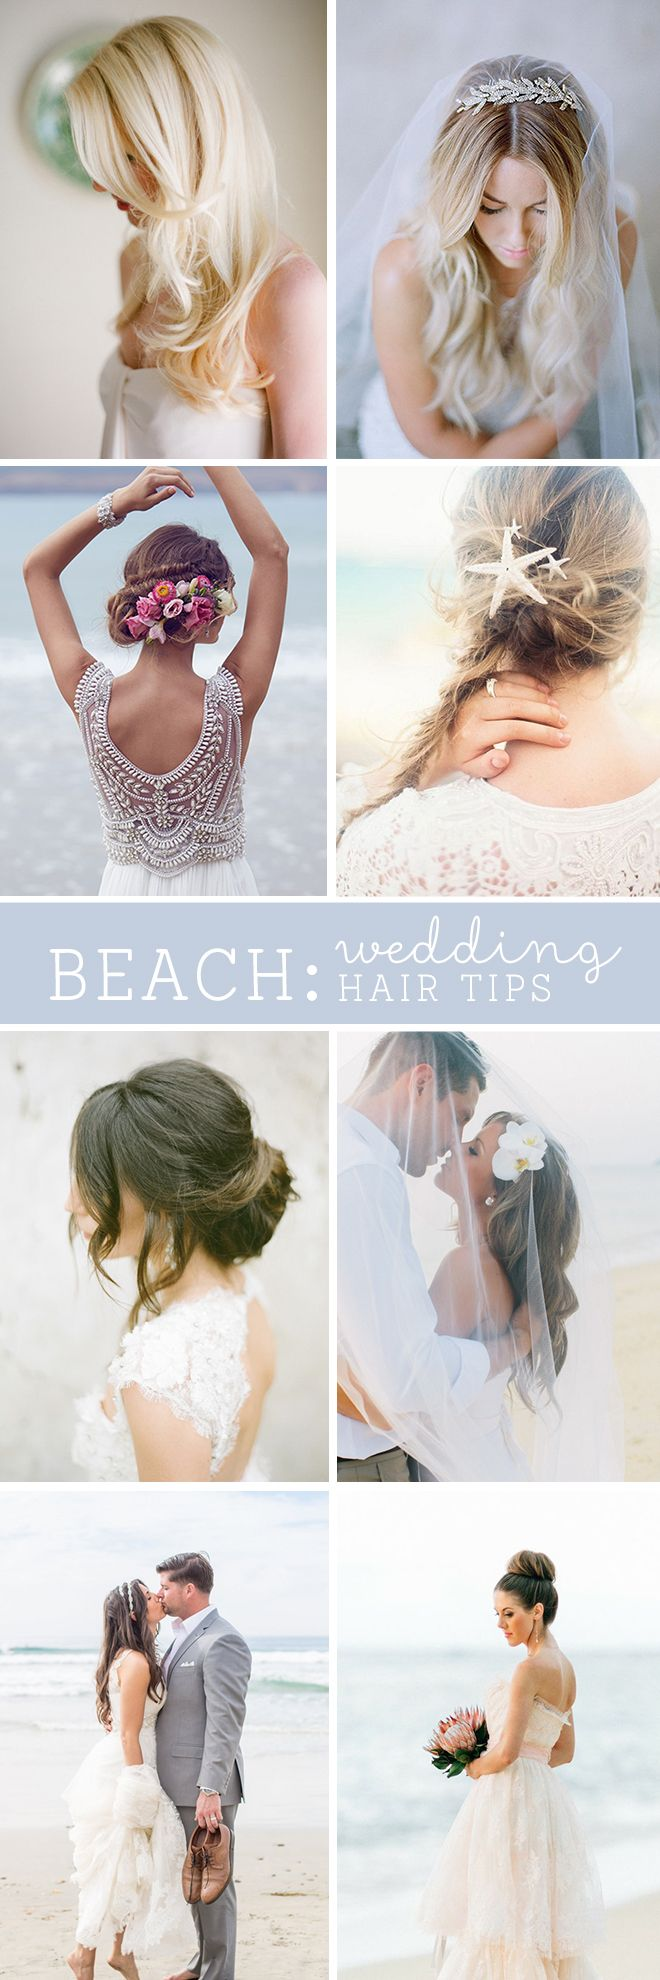 251 best Gorgeous Wedding Hair images on Pinterest | Wedding hairs ...